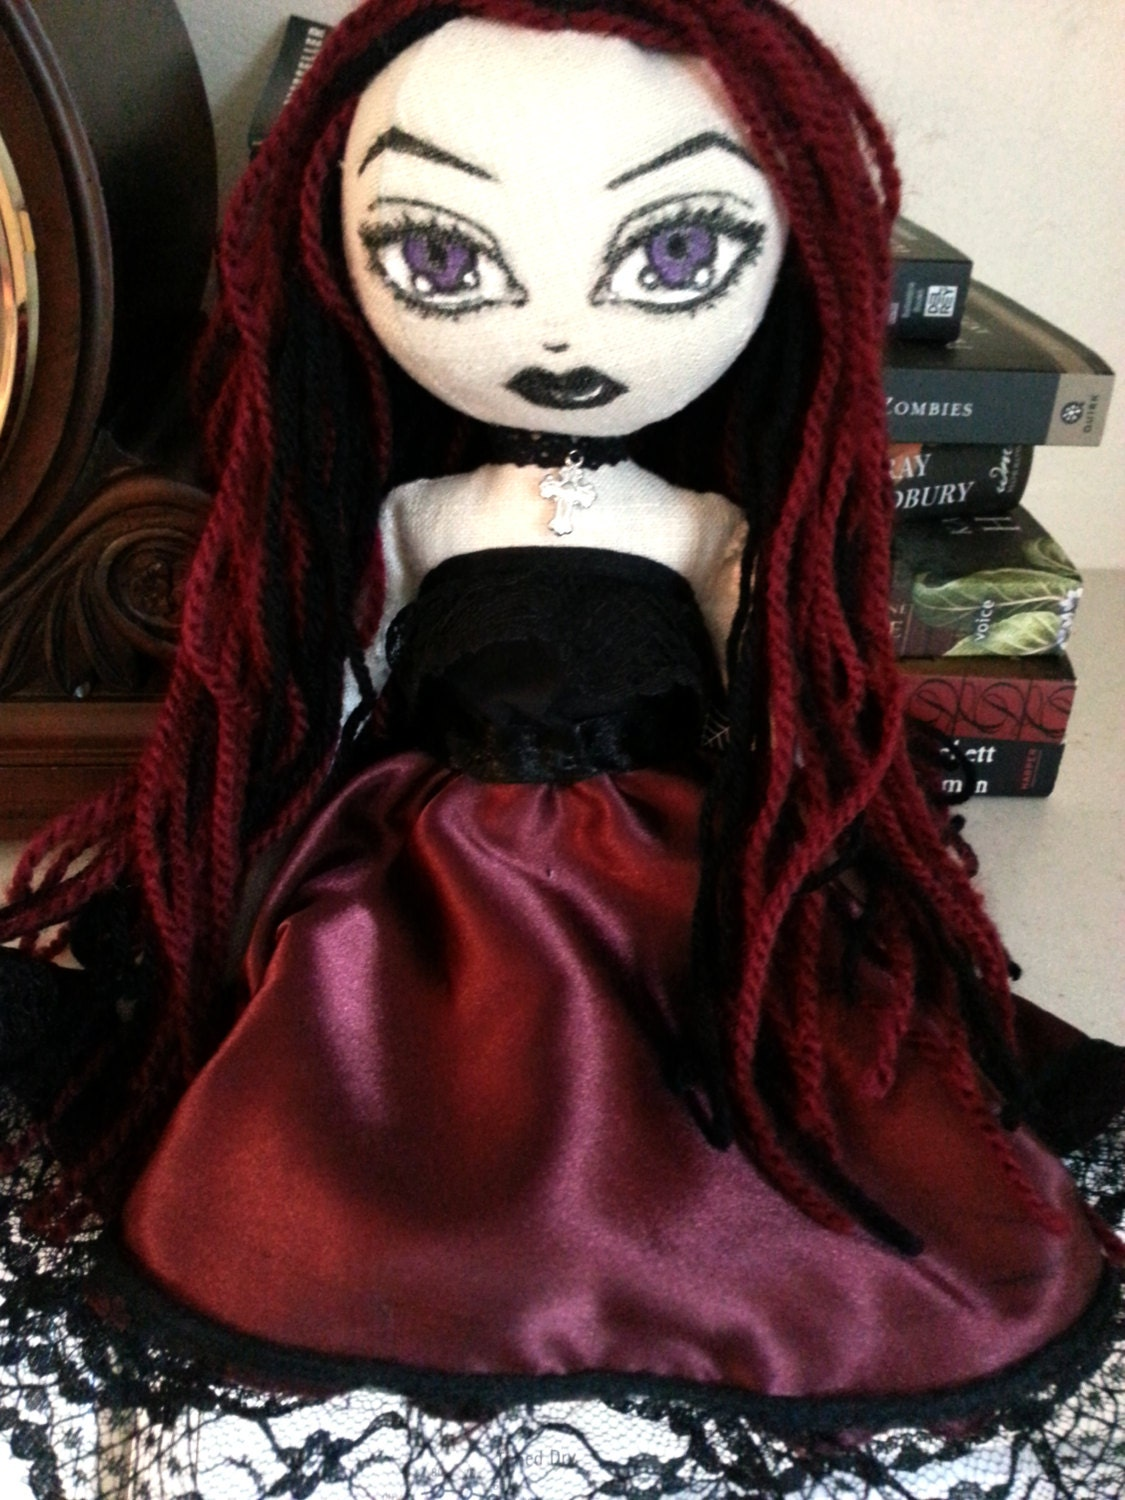 Handmade Gothic Harajuku Fashion W H Naoto Spiderweb Bag: RESERVED For Autumn Handmade Gothic Doll AnnaBelle